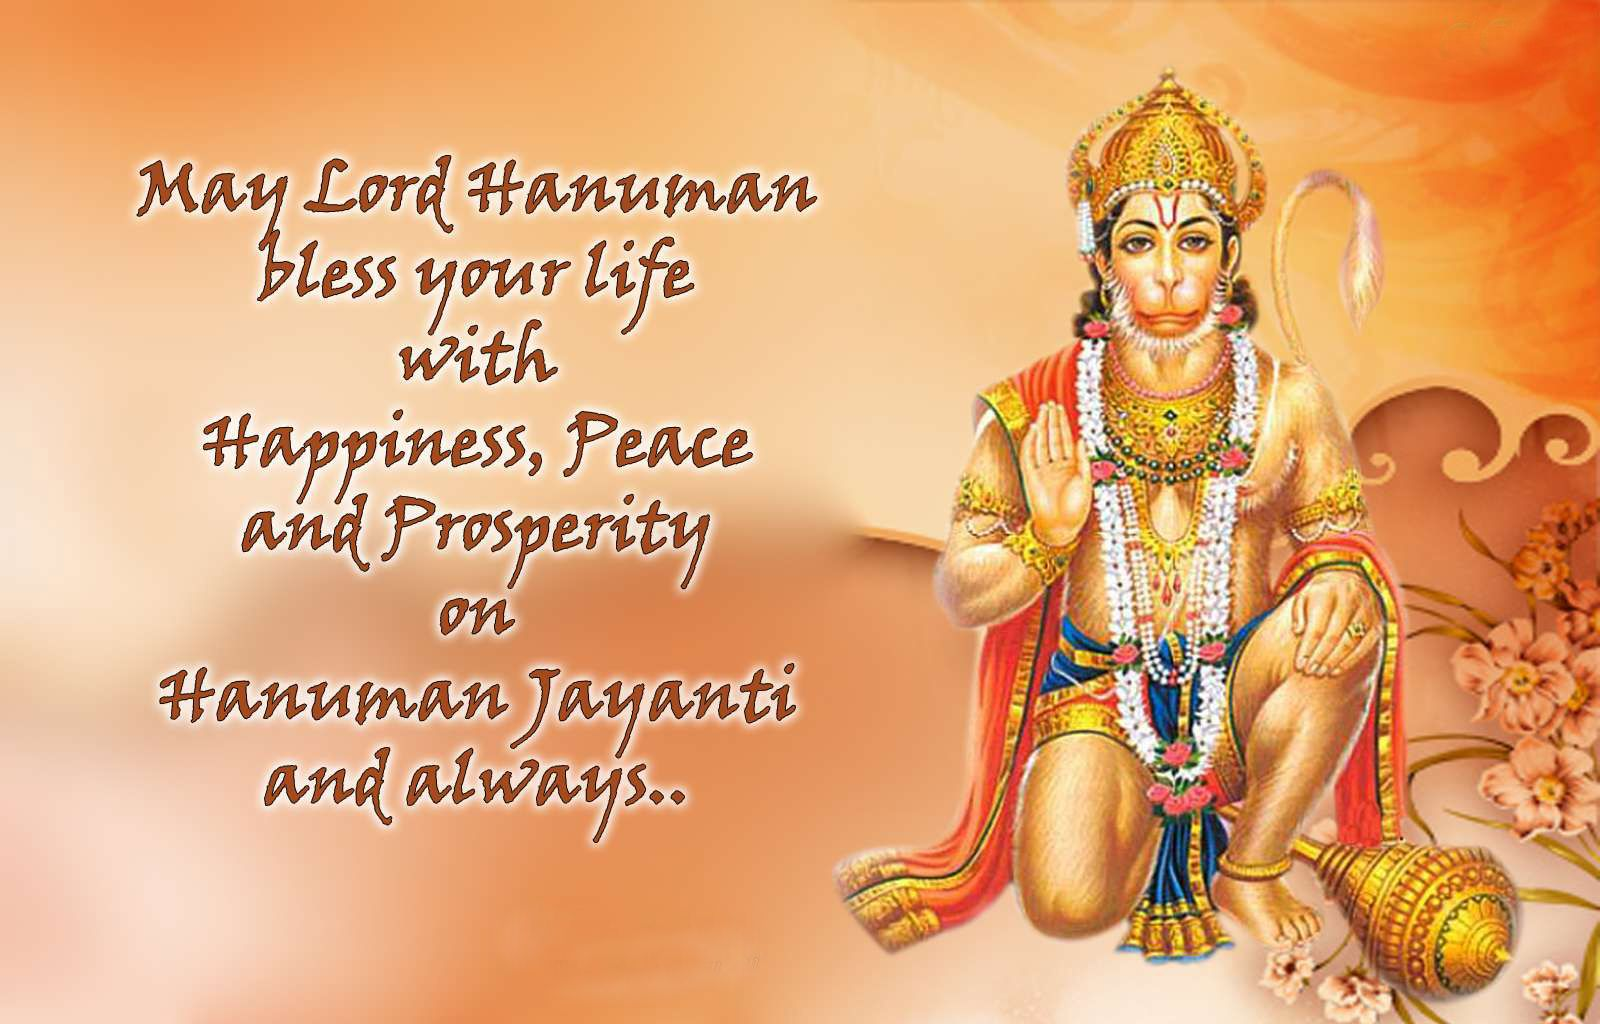 Happy hanuman jayanti wishes sms messages quotes whatsapp text msg happy hanuman jayanti wishes sms messages quotes whatsapp text msg status shayari in hindi english greetings new home kristyandbryce Gallery